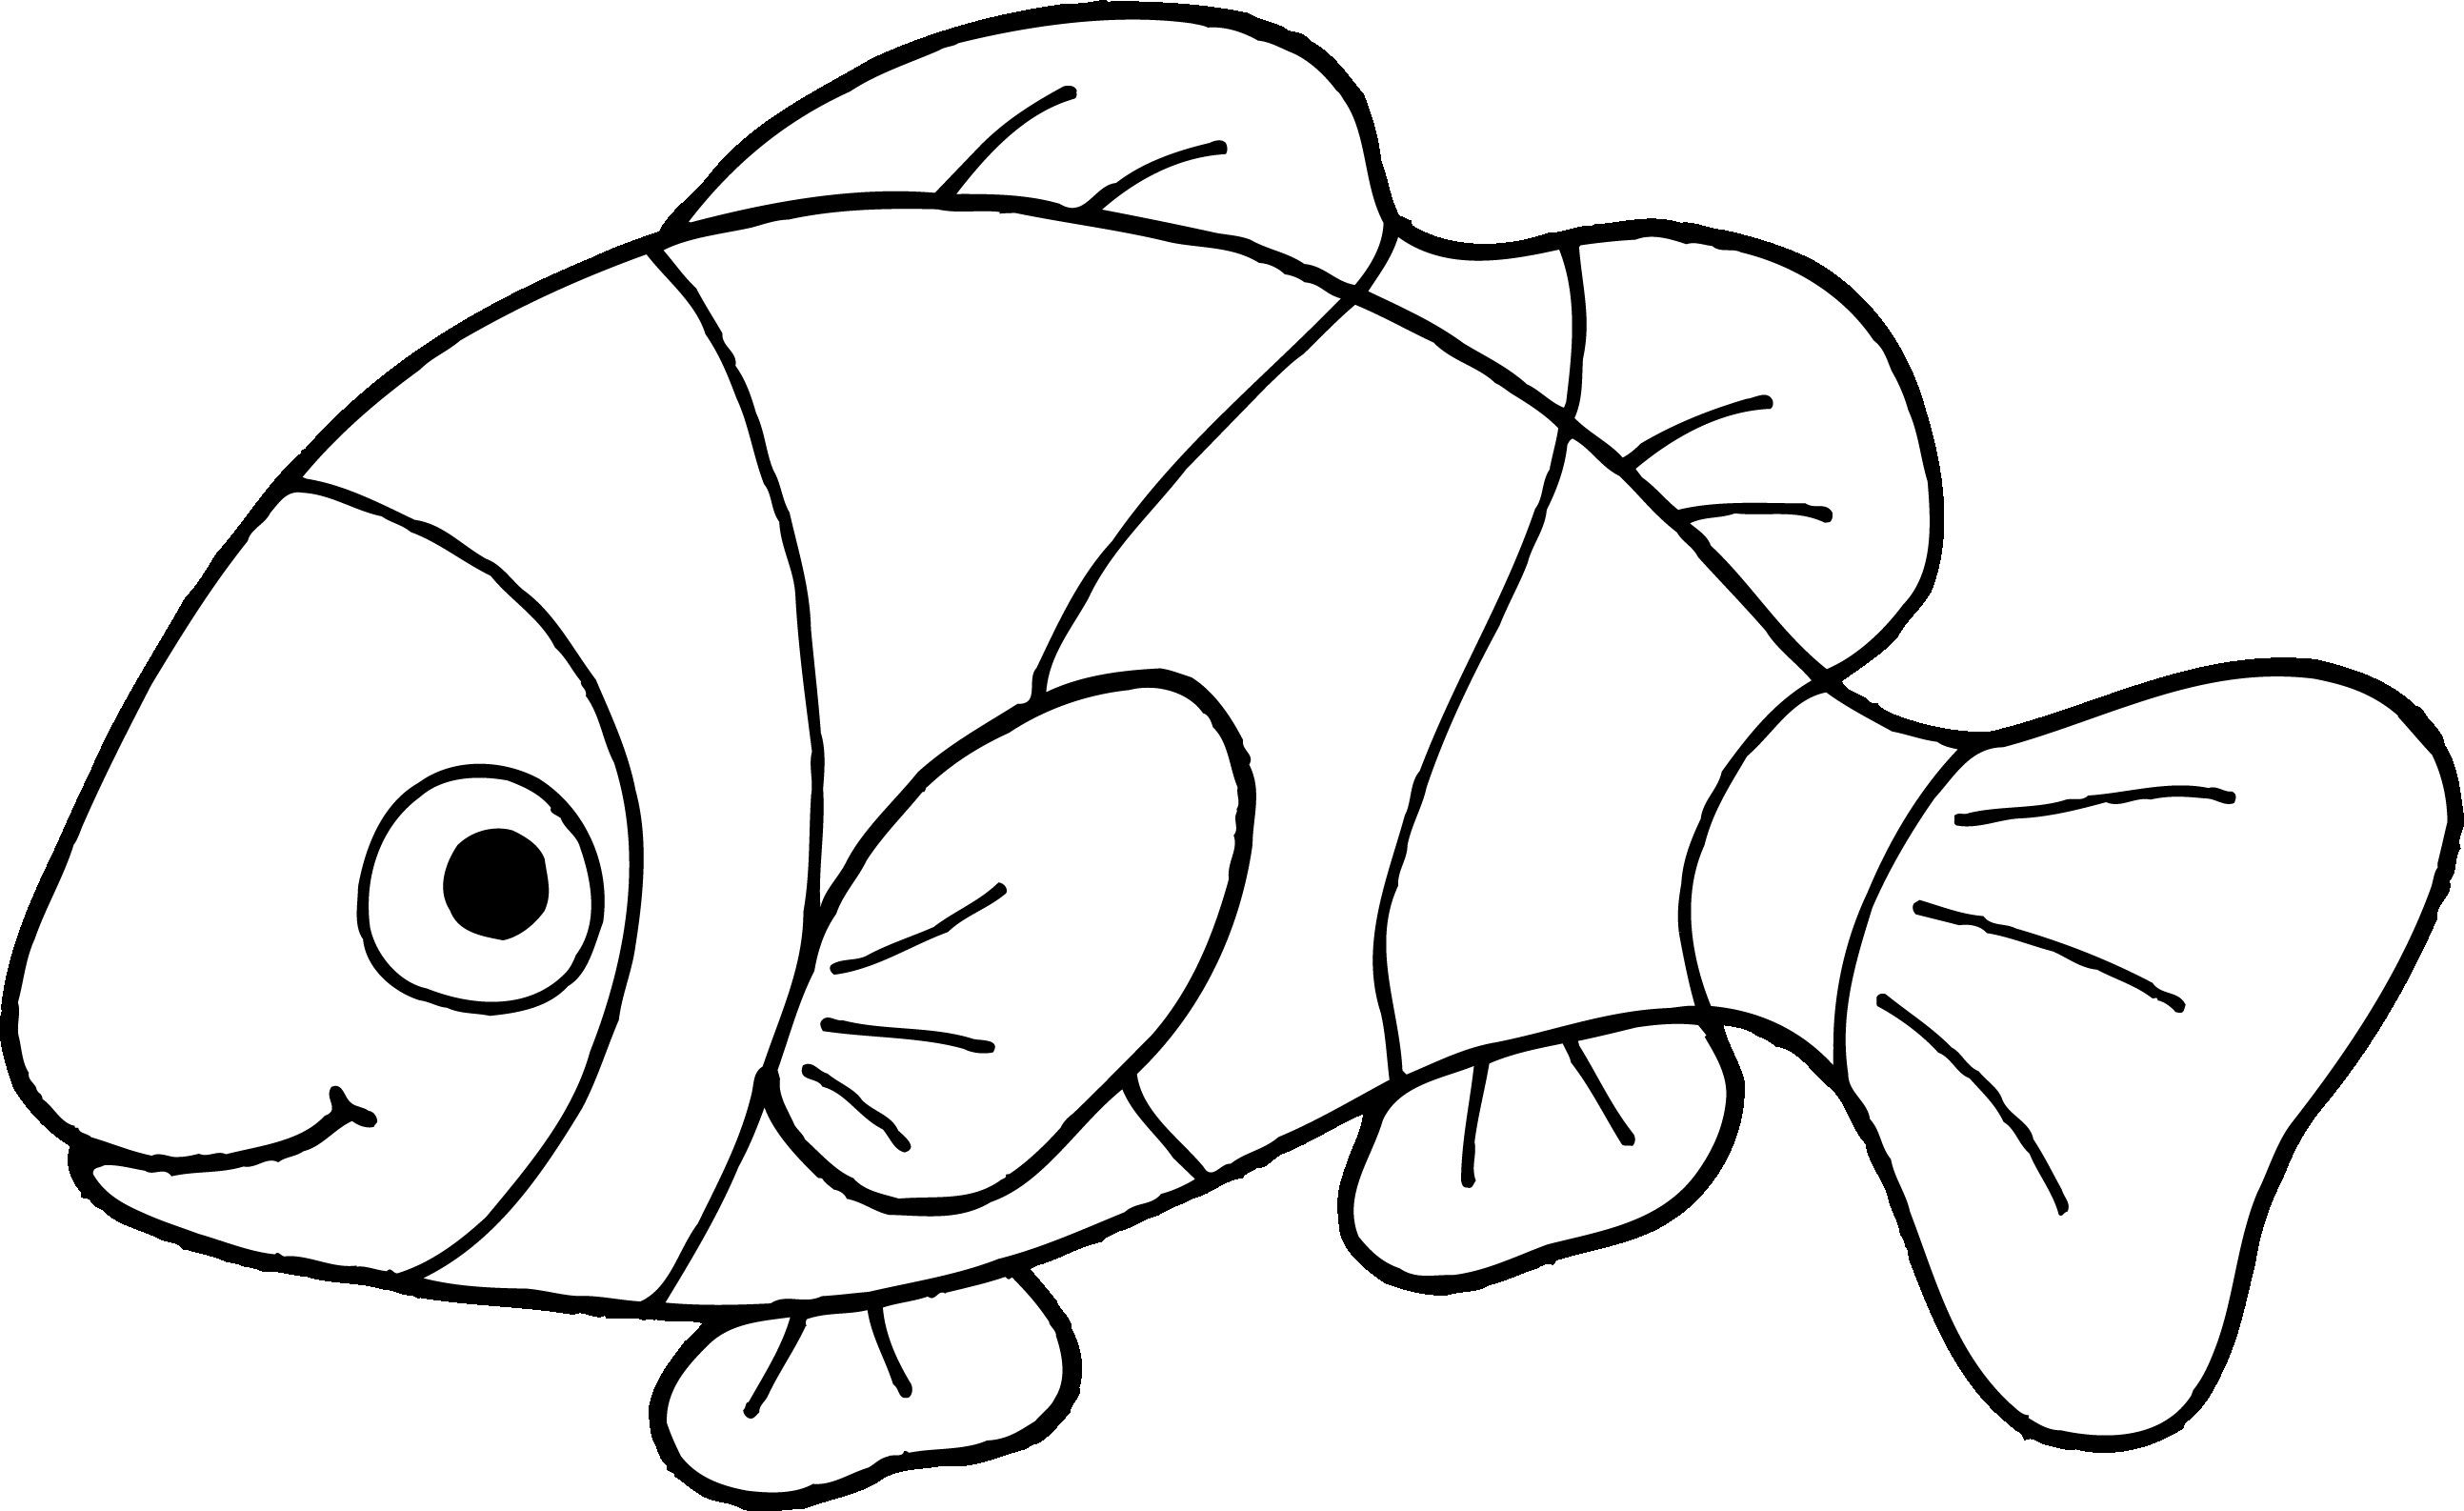 Fish outline nemo